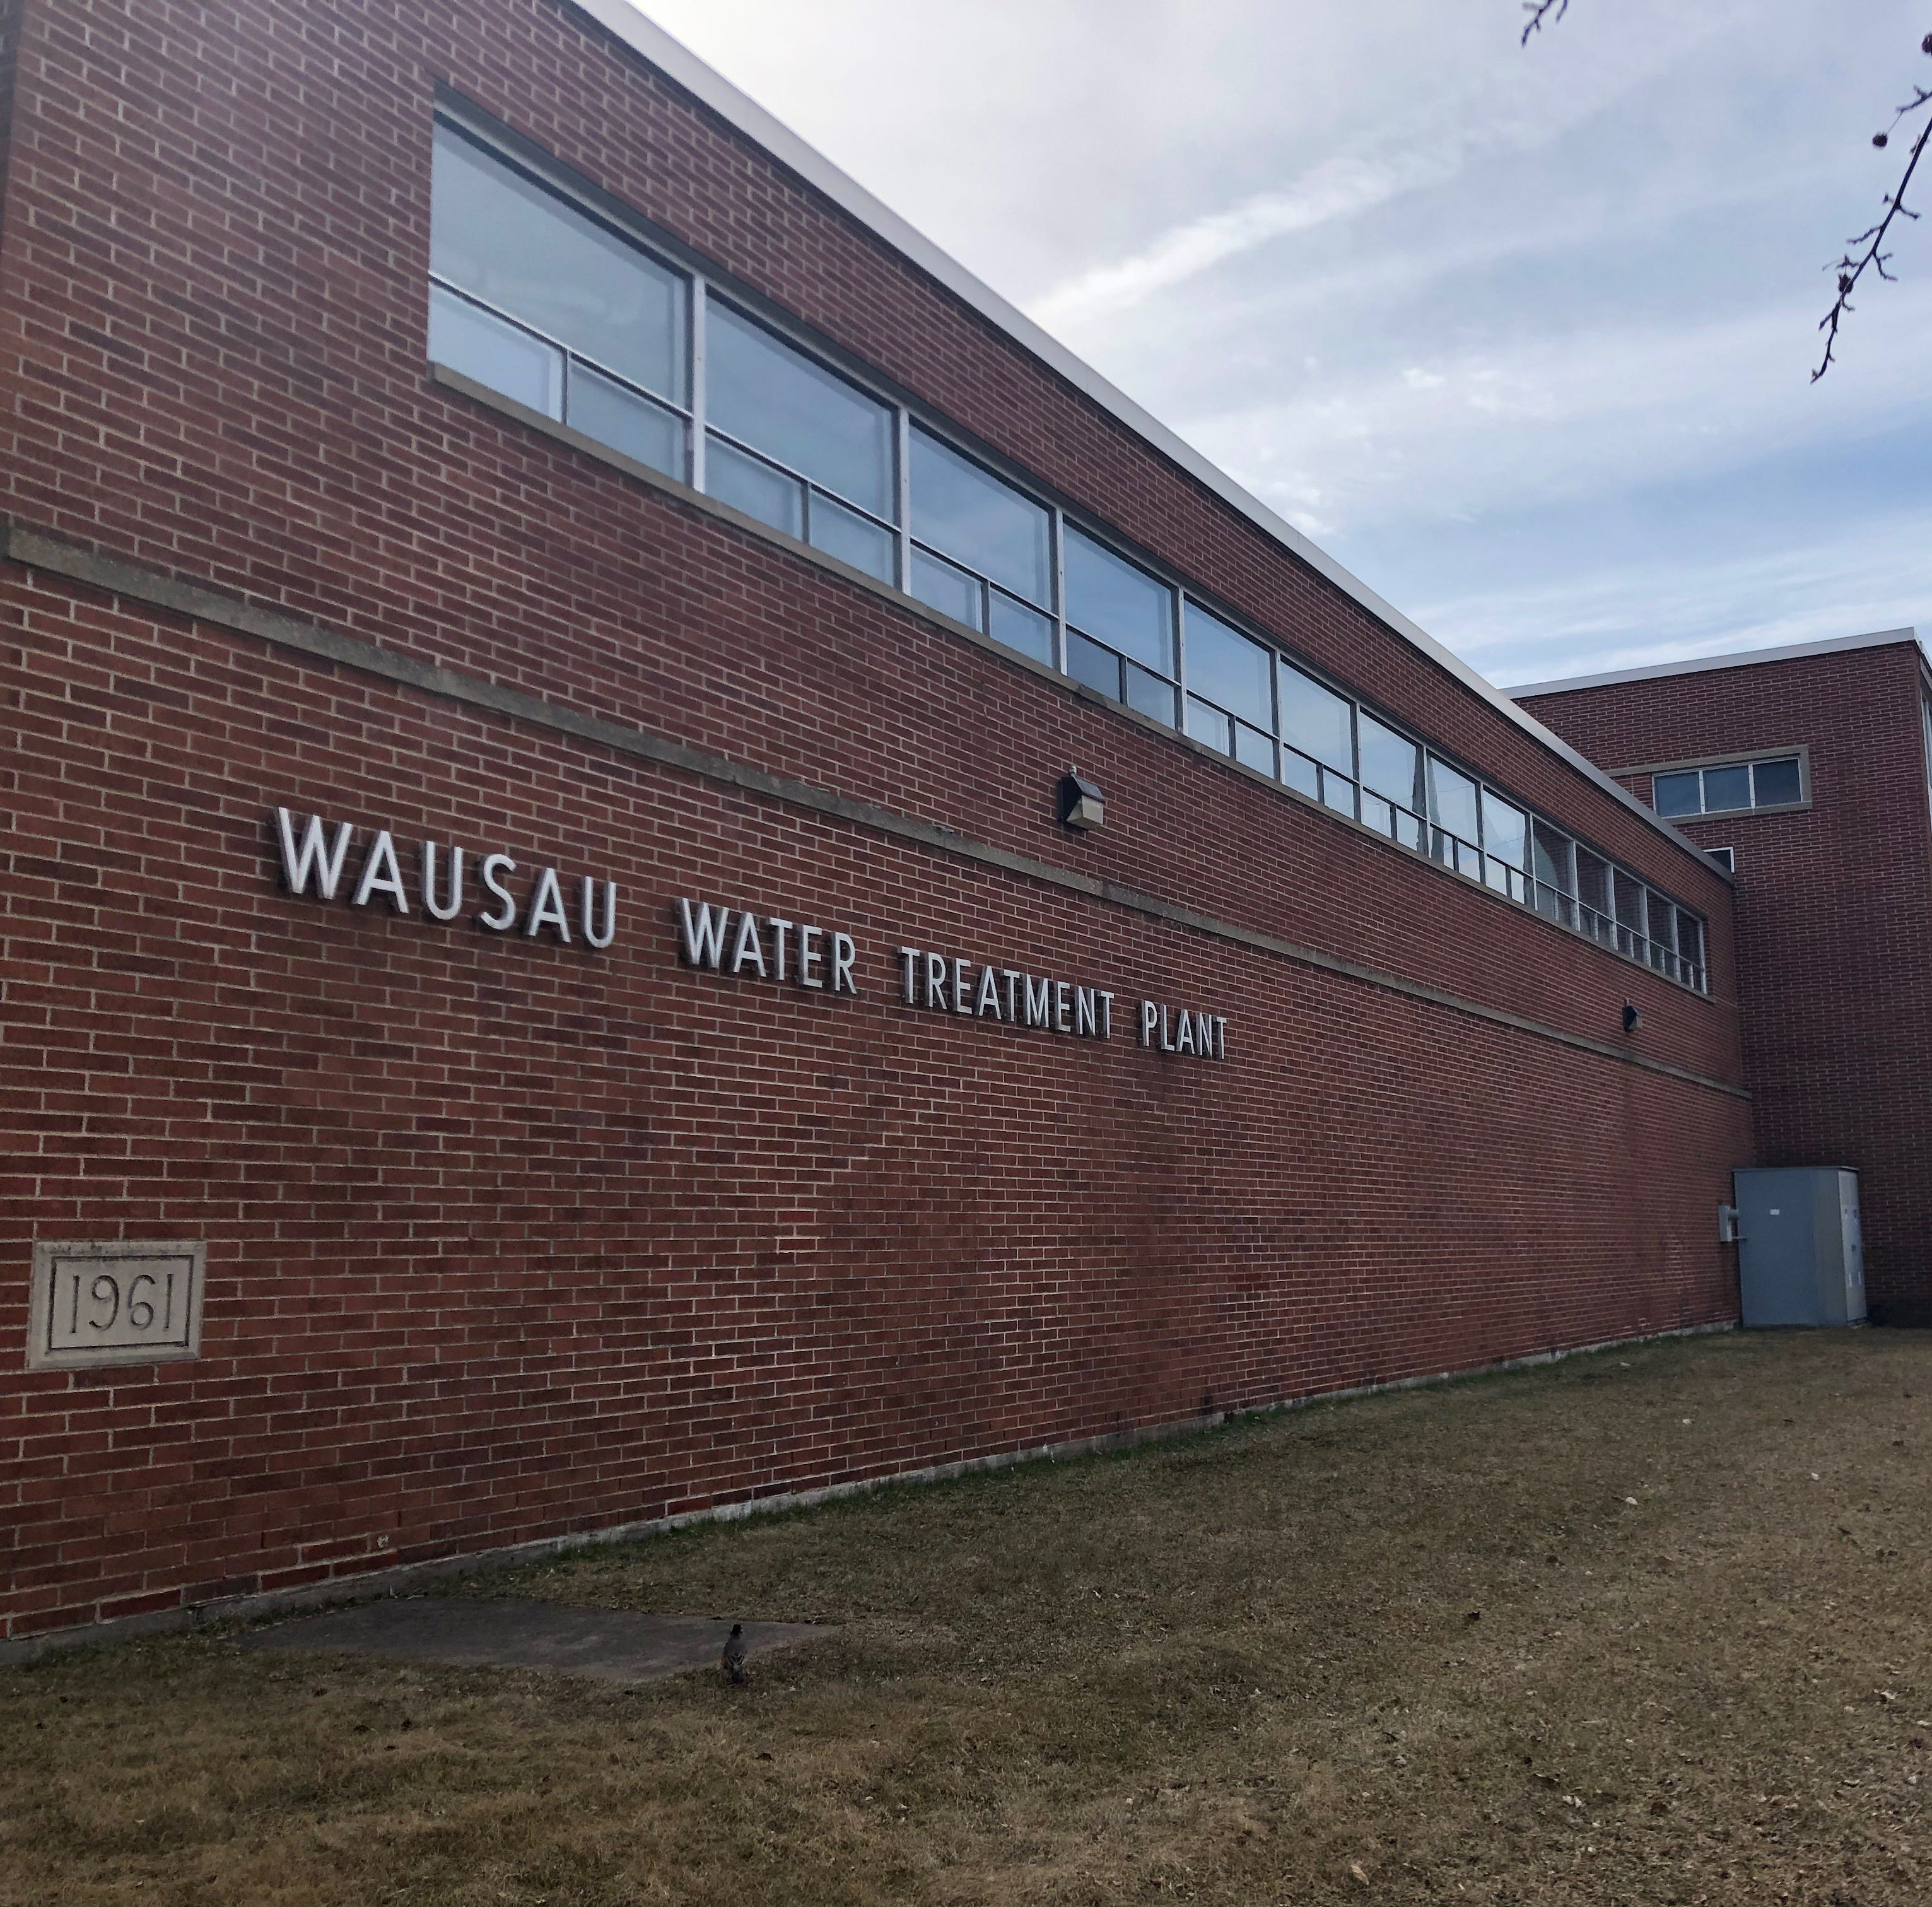 Wausau water bills: Residents to see $200 increase by 2021 to fund treatment plants